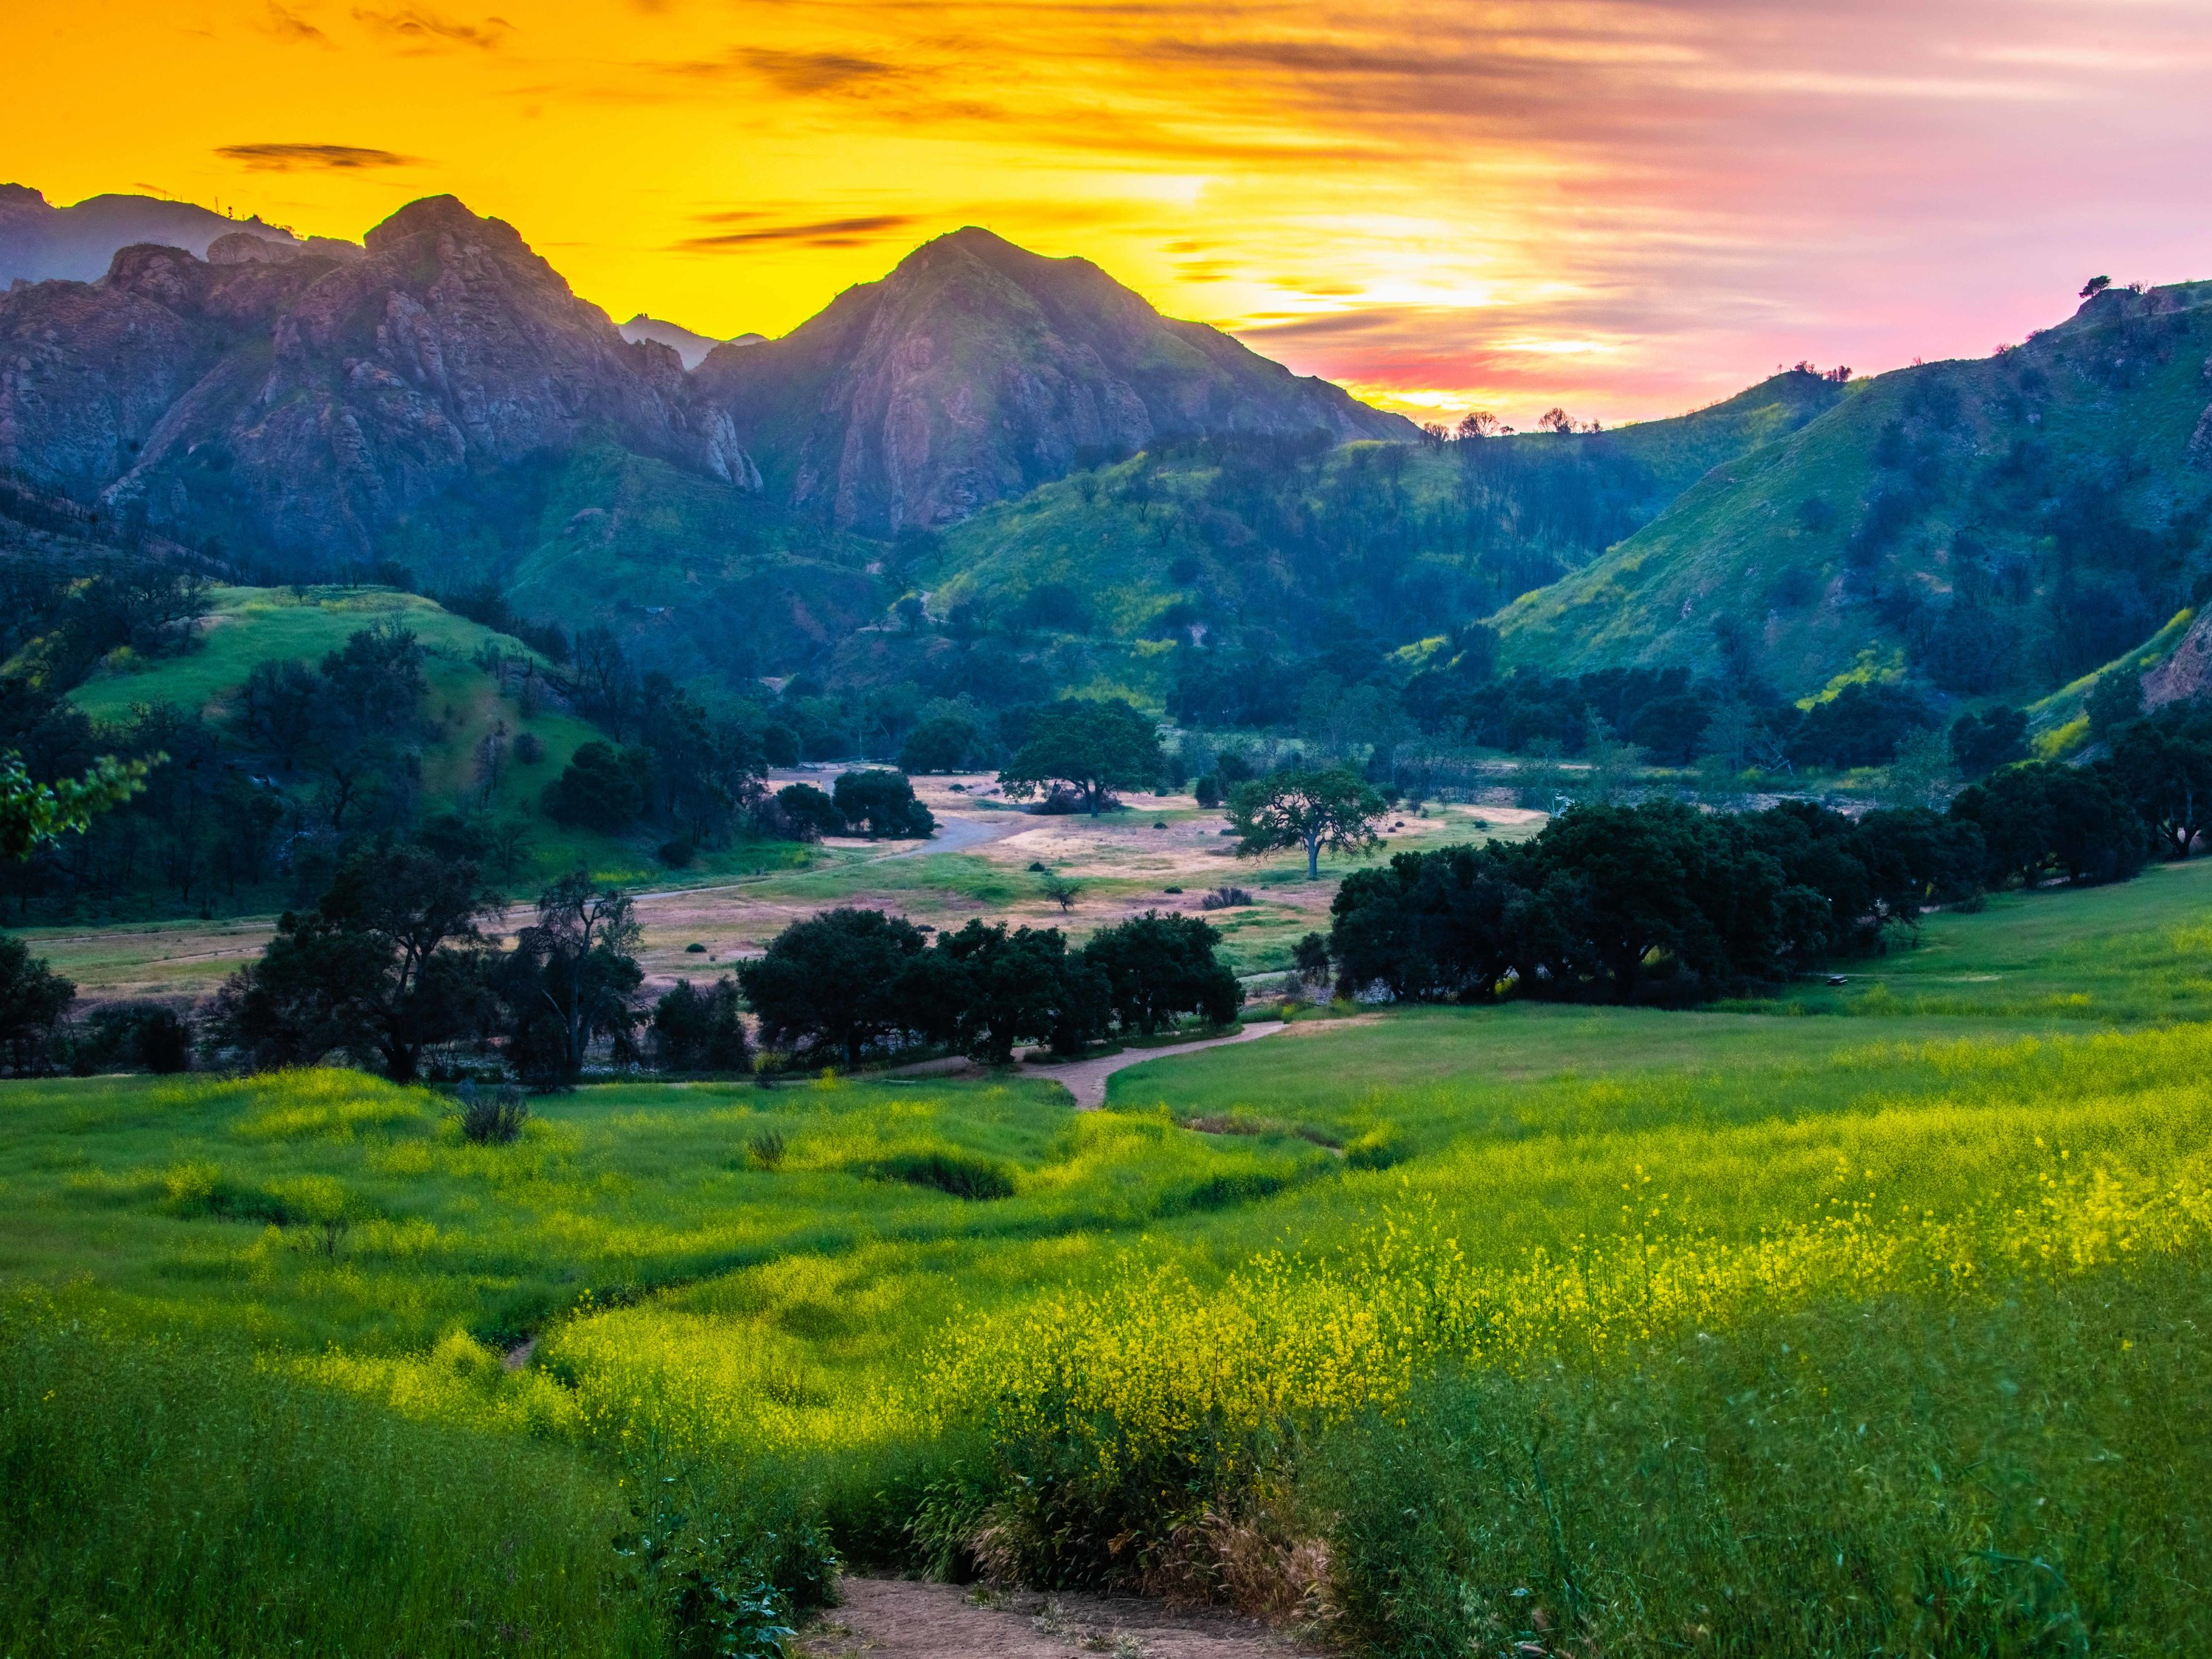 Malibu Creek State Park, Los Angeles, California